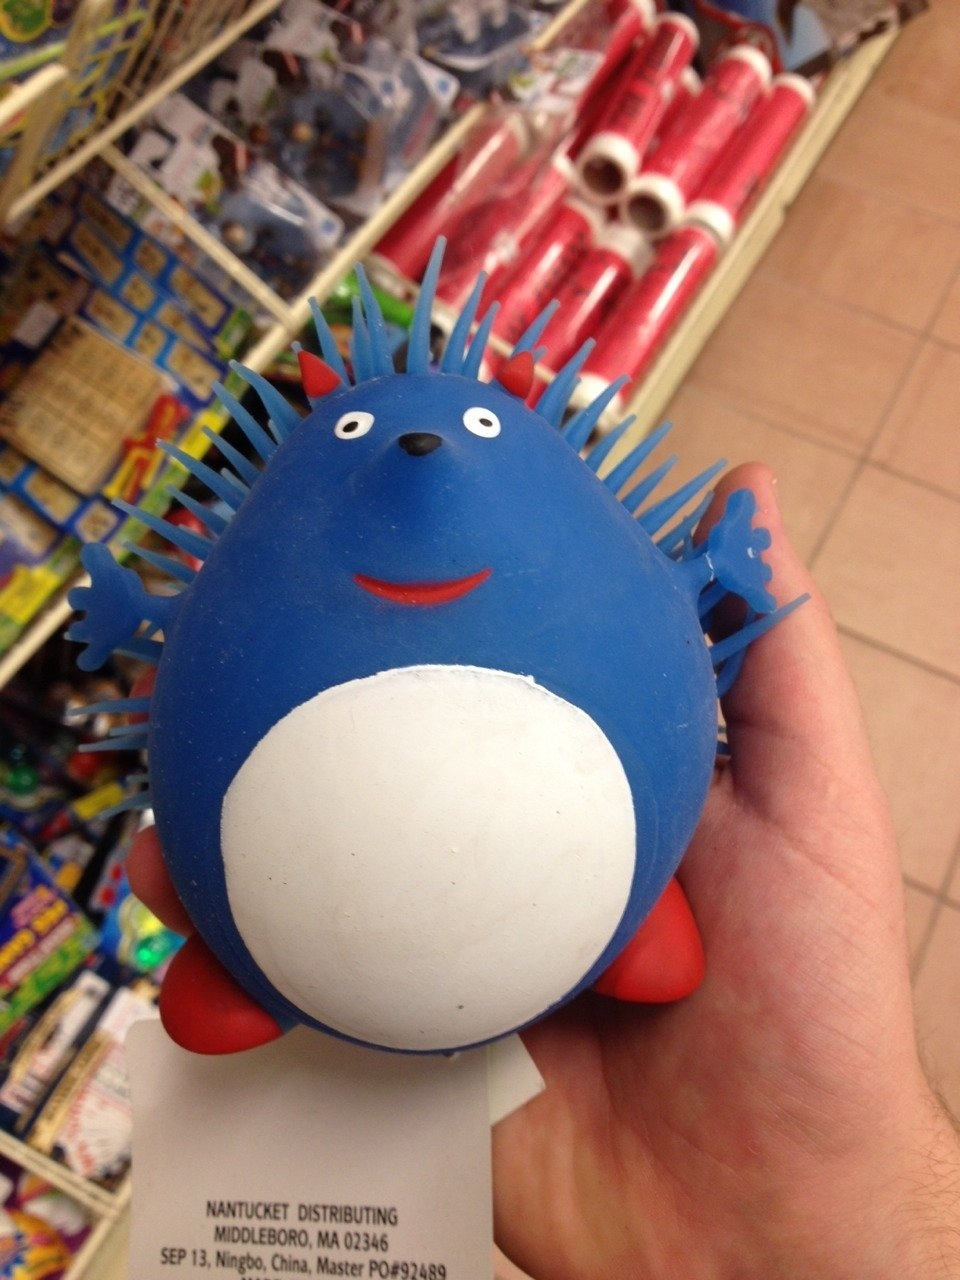 Actually looks a lot more like a blue hedgehog than Sonic does, at the very least.